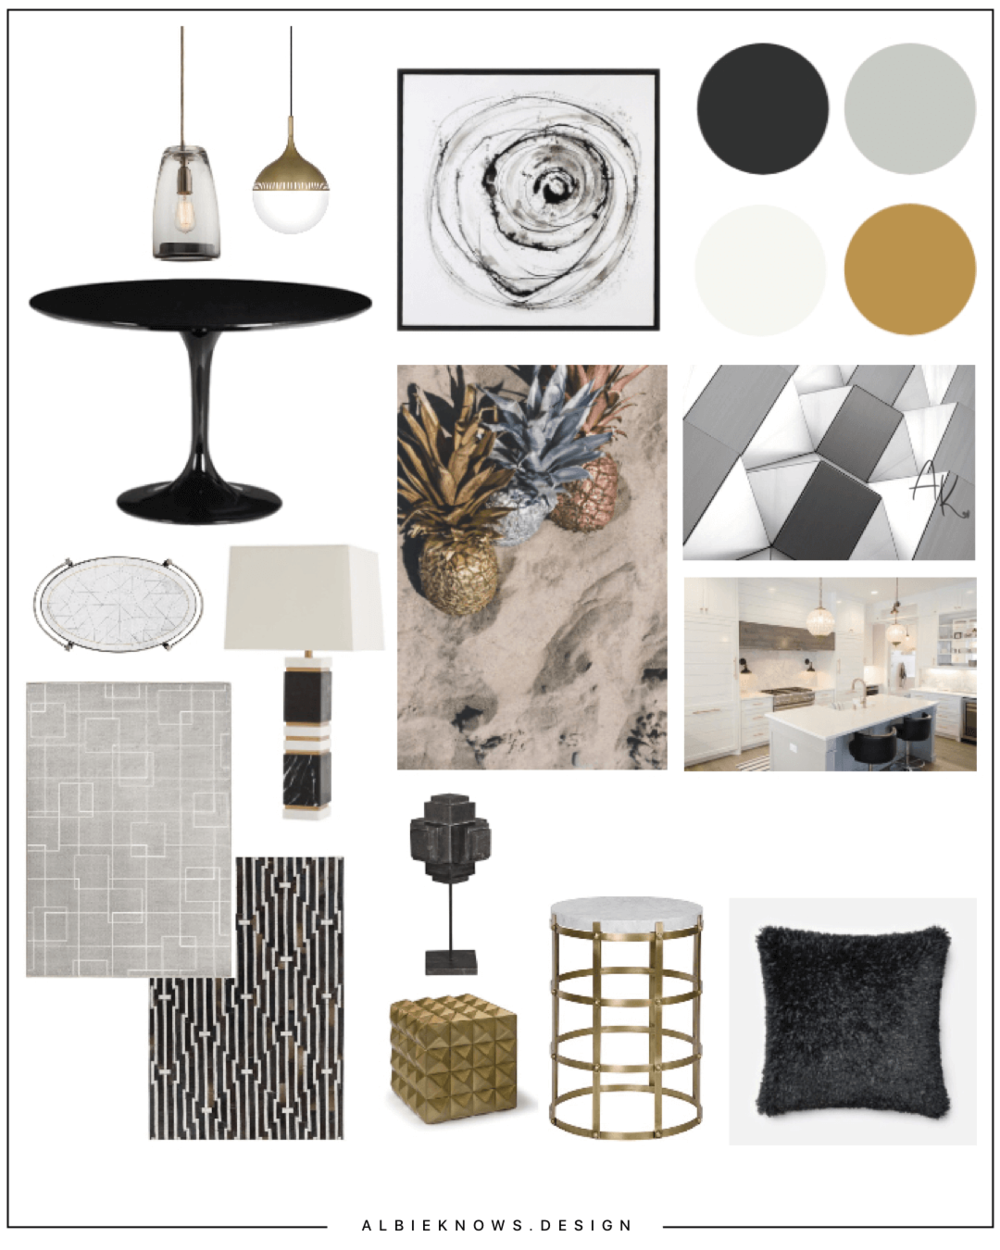 Hollywood Chic Home - Glam finishes with neutral hues come together to create a Hollywood inspired design that is full of elegance, character, and warmth.